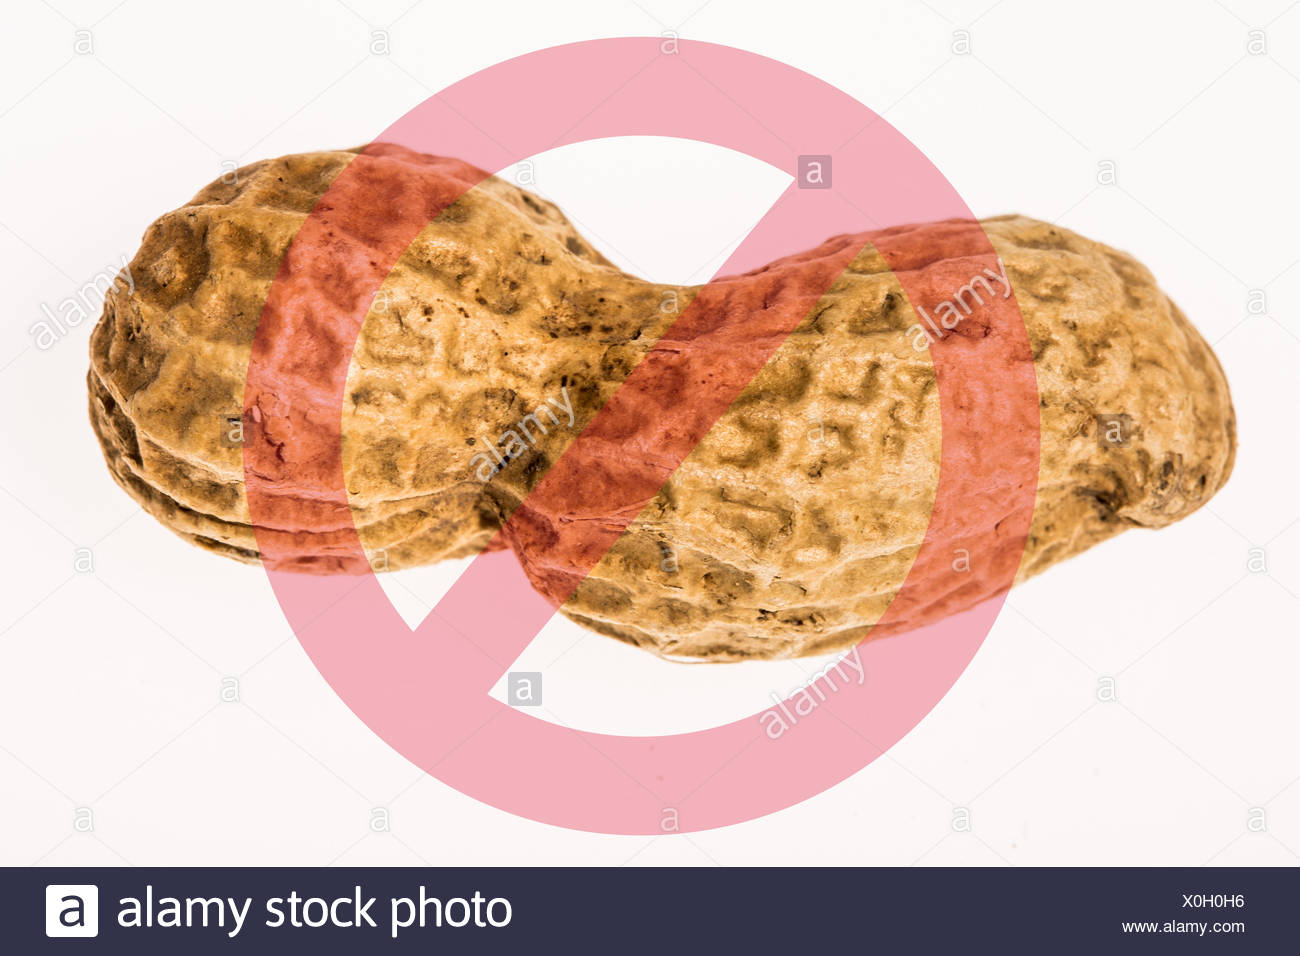 Conceptual image about peanut allergy. - Stock Image